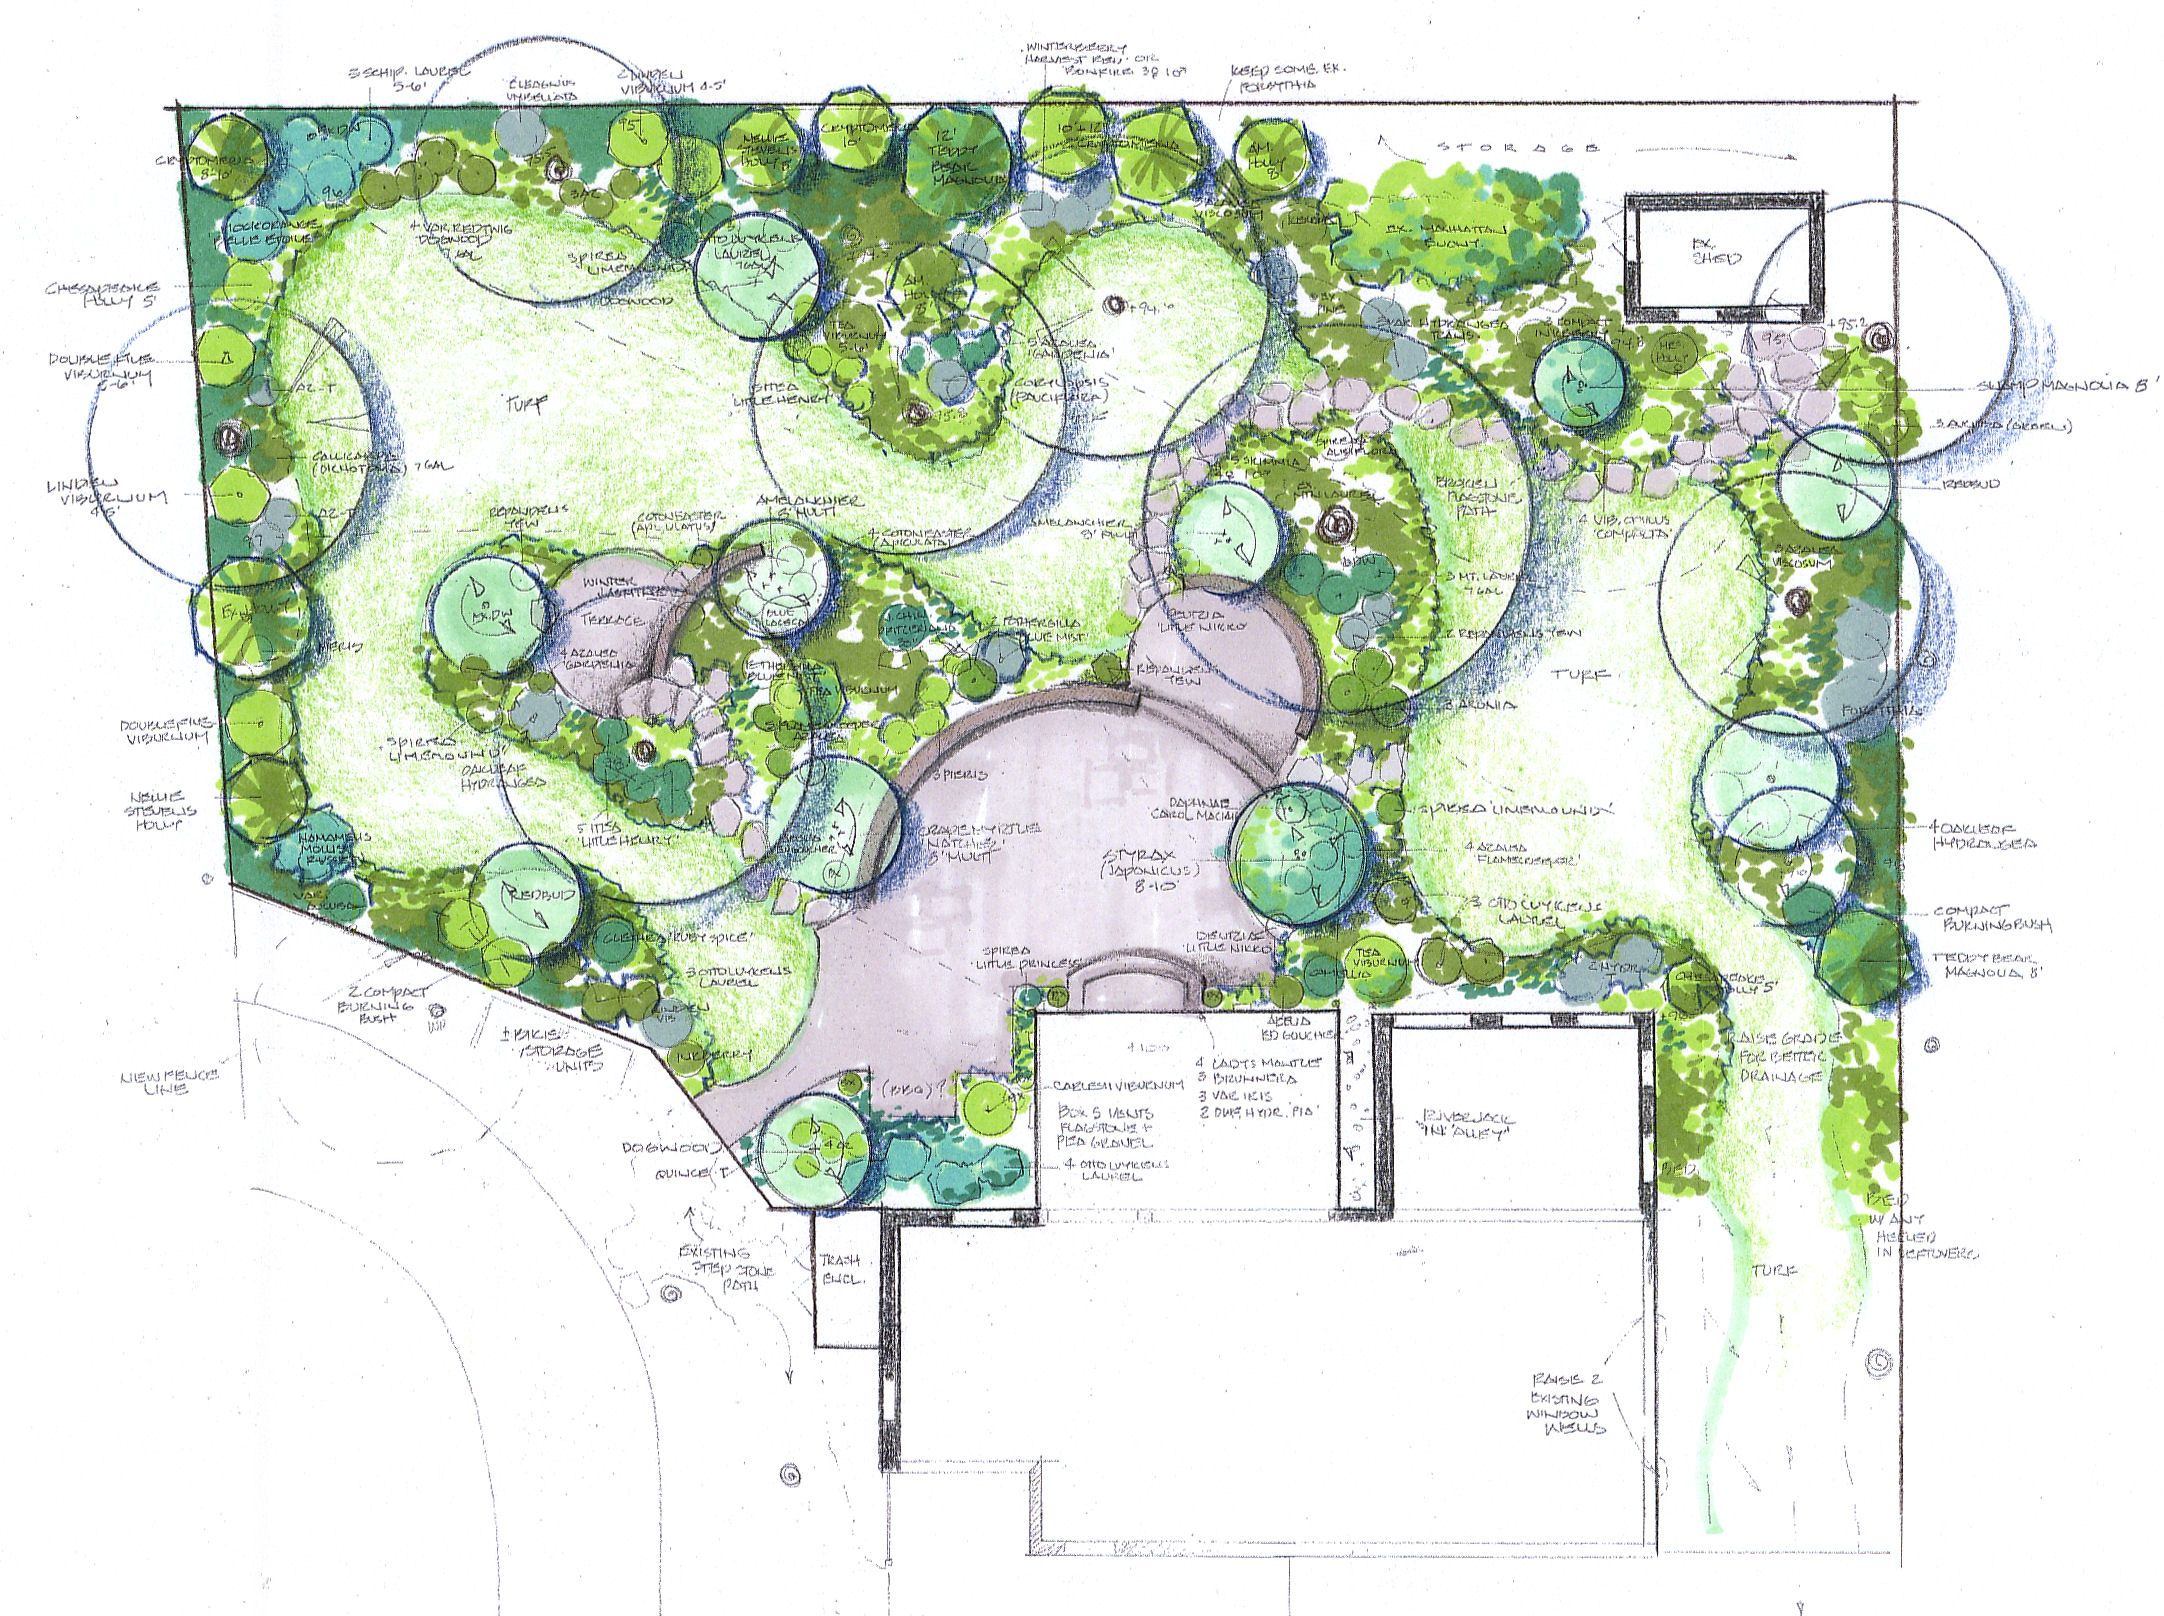 Inspiring landscape patio designs living gardens va md and for Landscape design courses christchurch